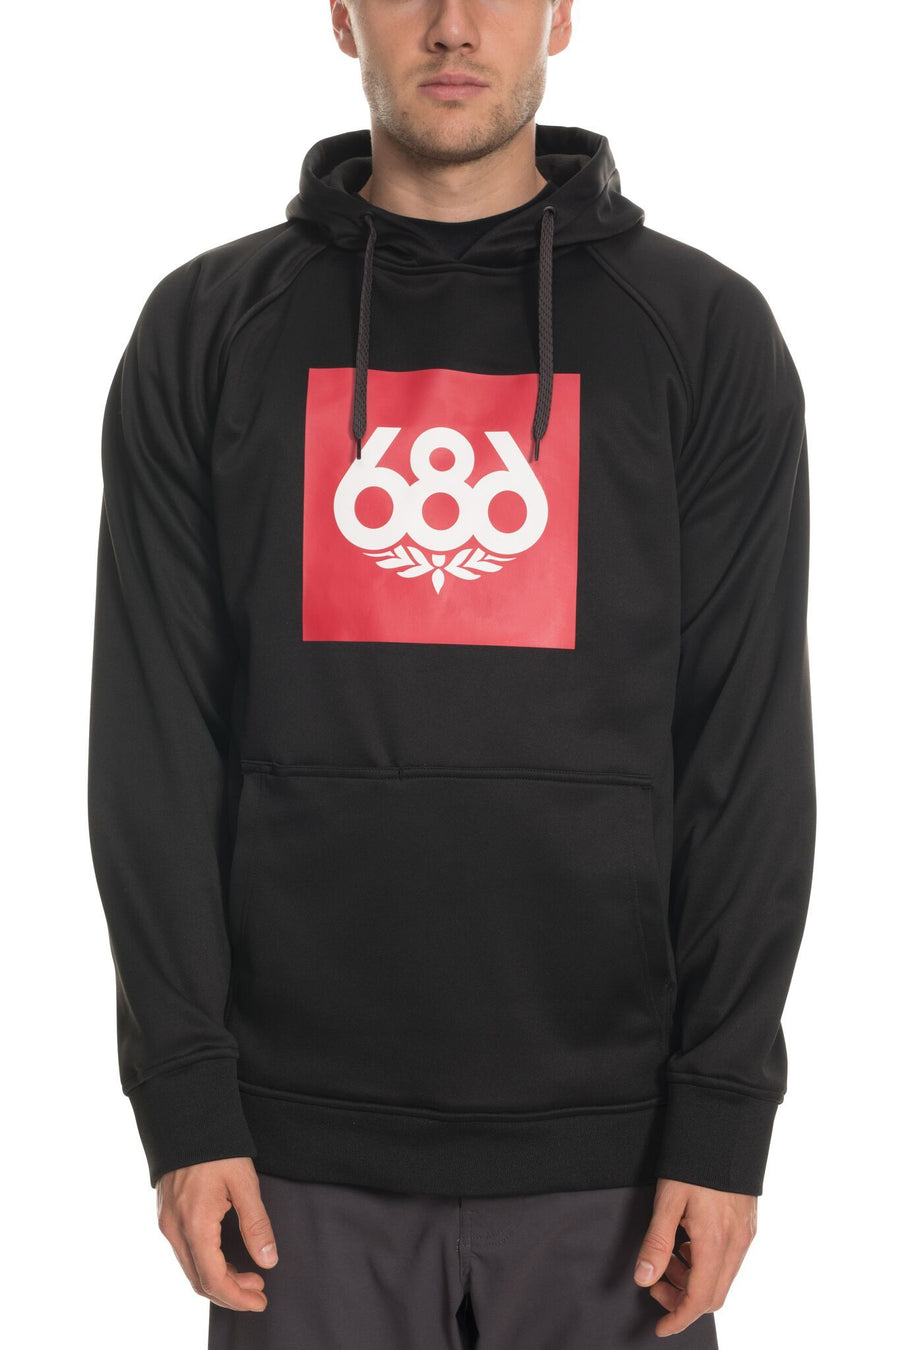 686 Knockout Bonded Pullover Hoodie Black MENS APPAREL - Men's Pullover Hoodies 686